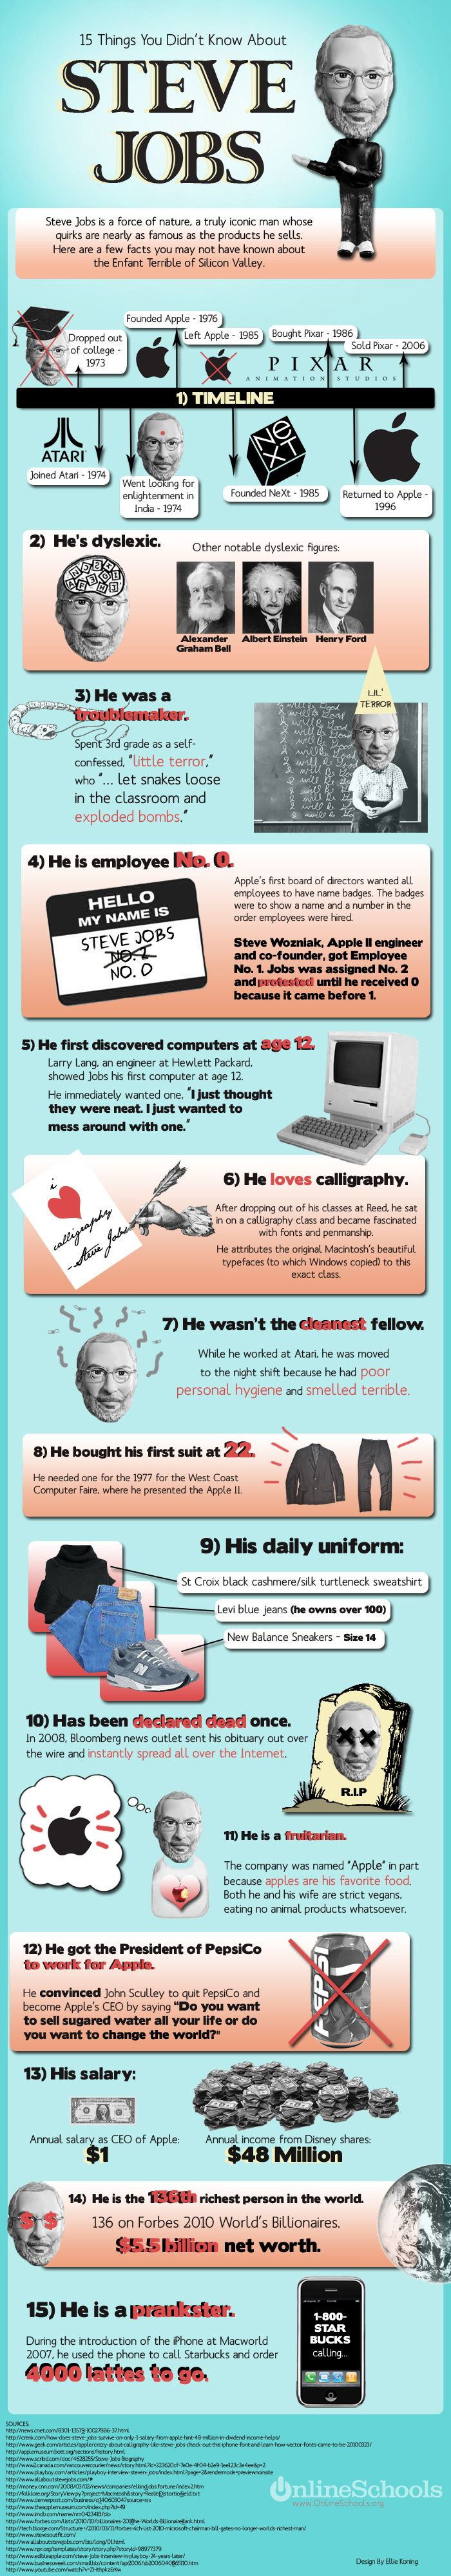 15 Things You Didn't Know About Steve Jobs [Infographic] | #Infographic #SteveJobs |